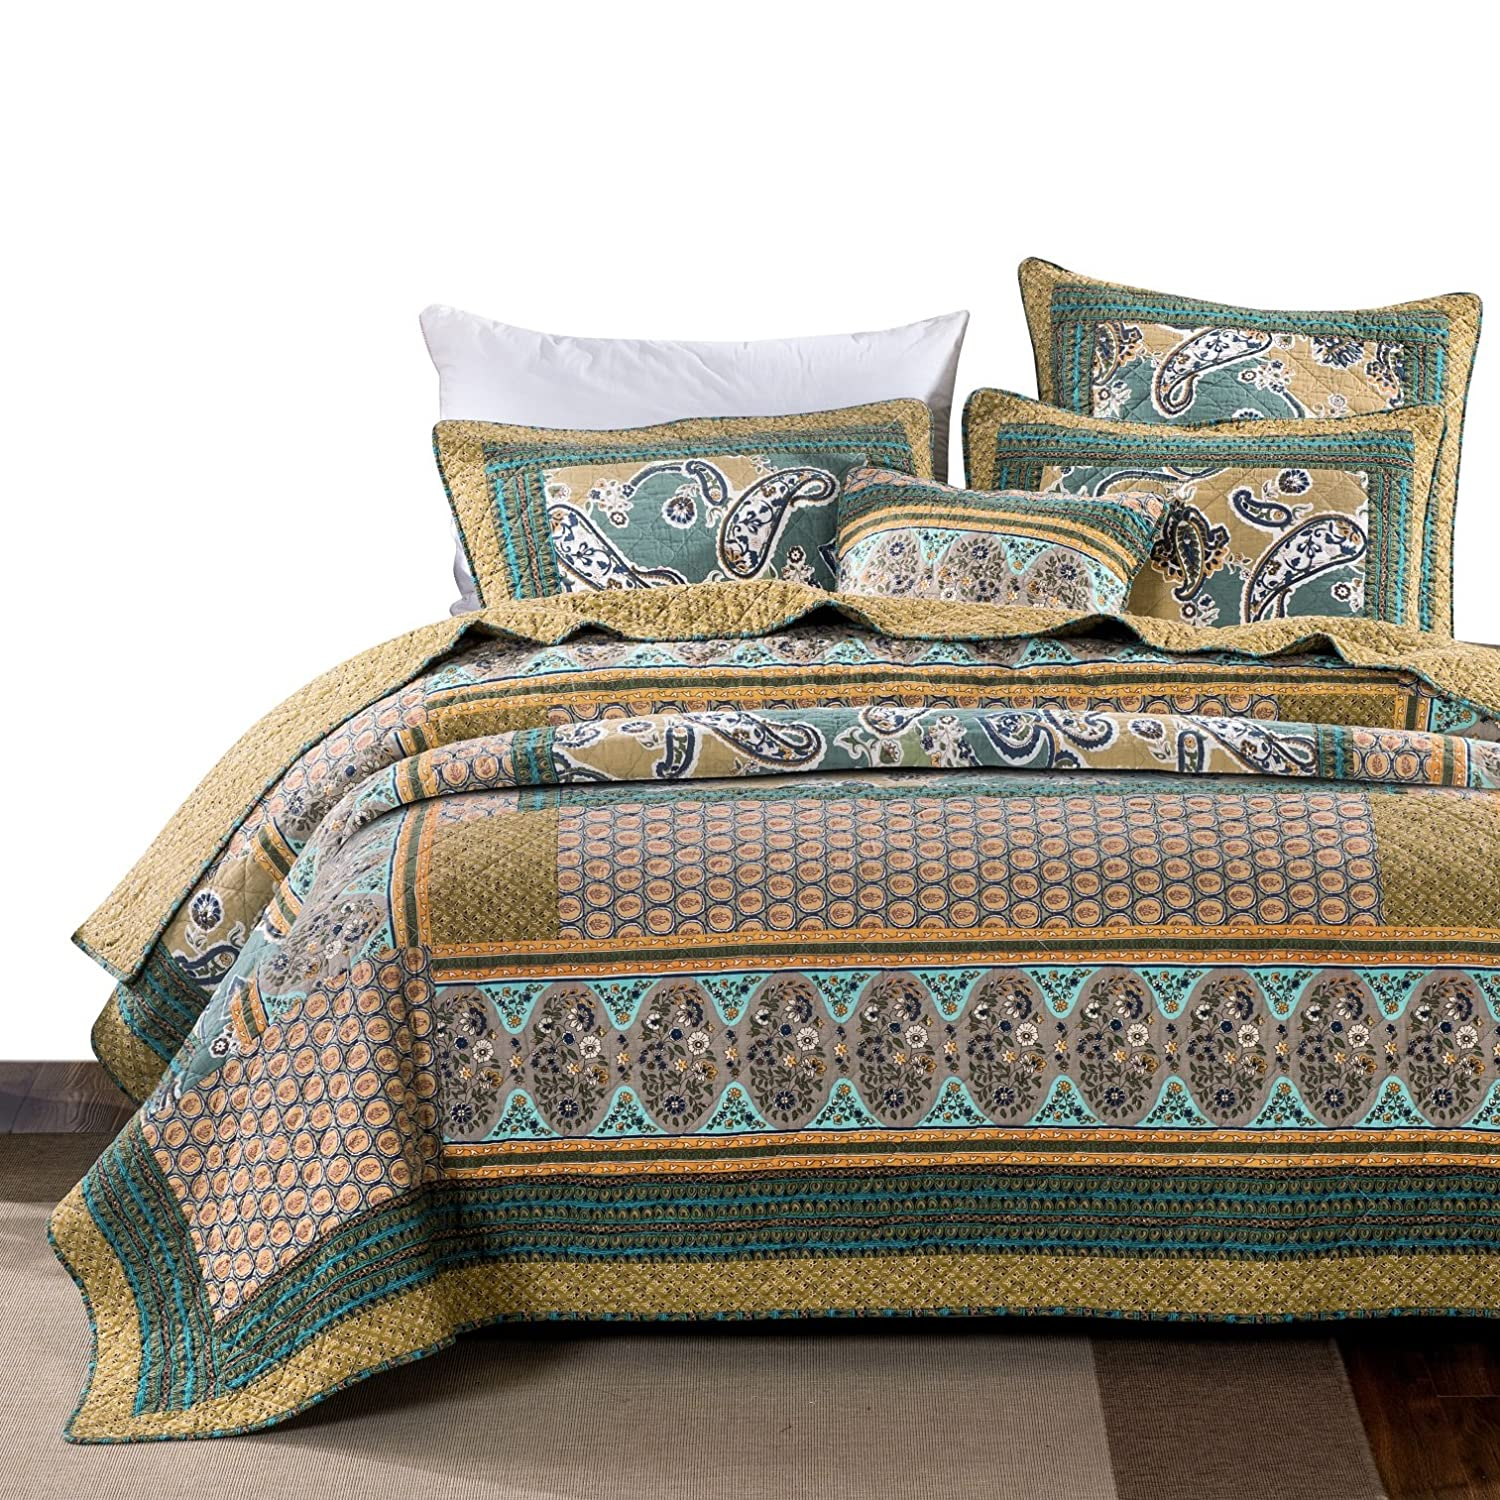 Amazon.com: DaDa Bedding Bohemian Paisley Quilt - Green Tea Dreams Bedspread  Set - Cotton Patchwork Floral Bright Vibrant - Multi Colorful Yellow Blue  Olive ...